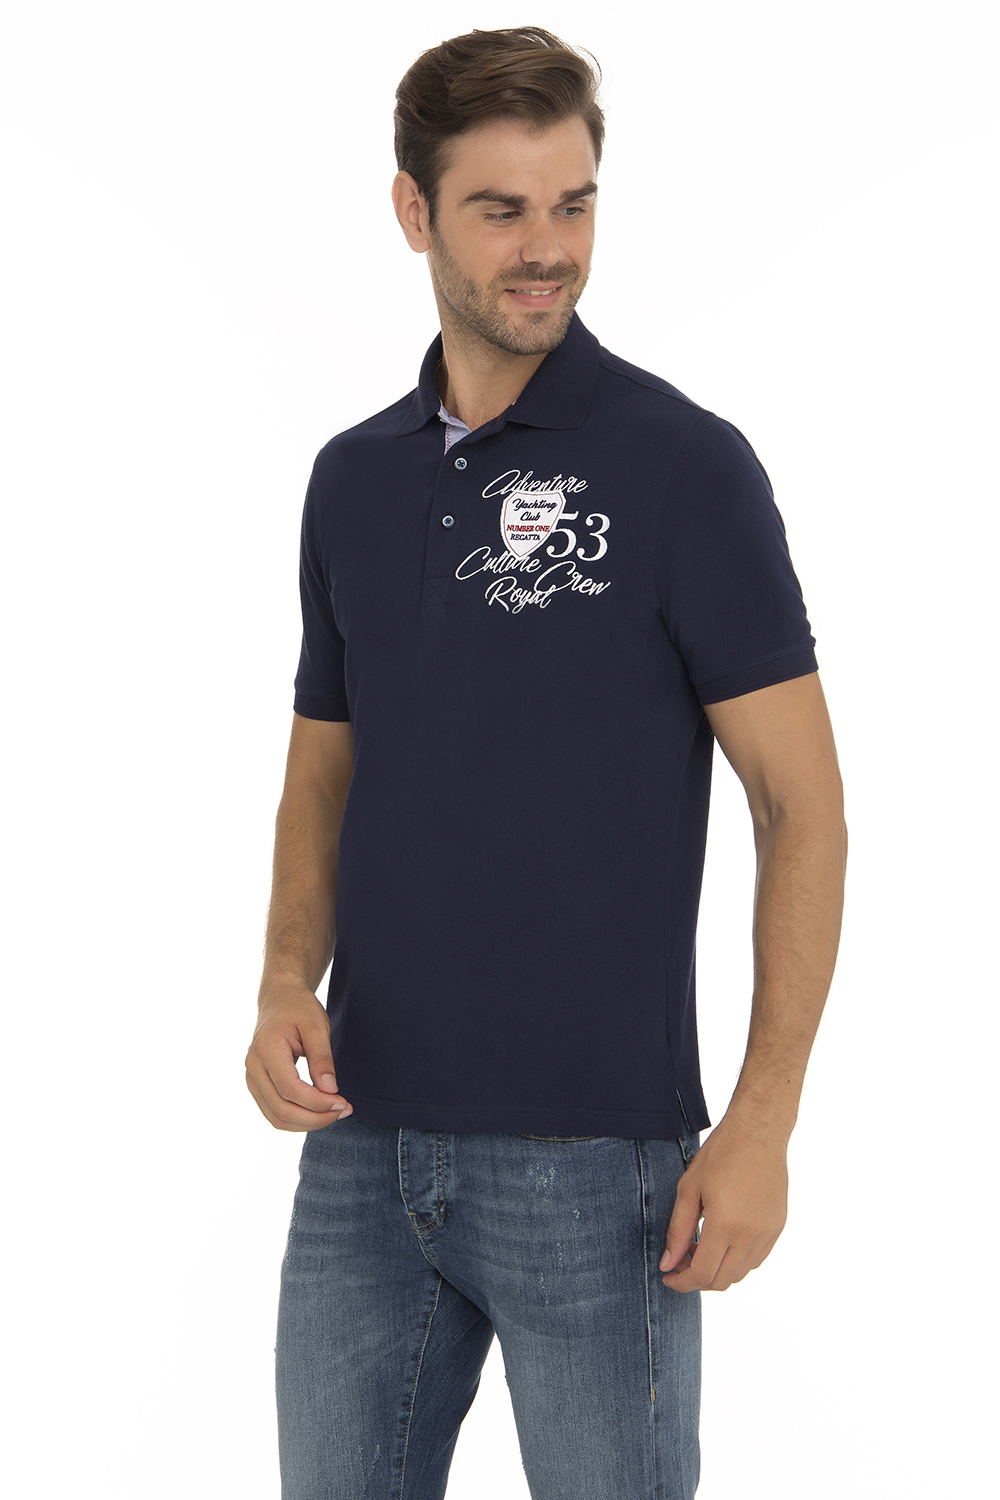 Men's Poloshirt Pique Navy Cotton